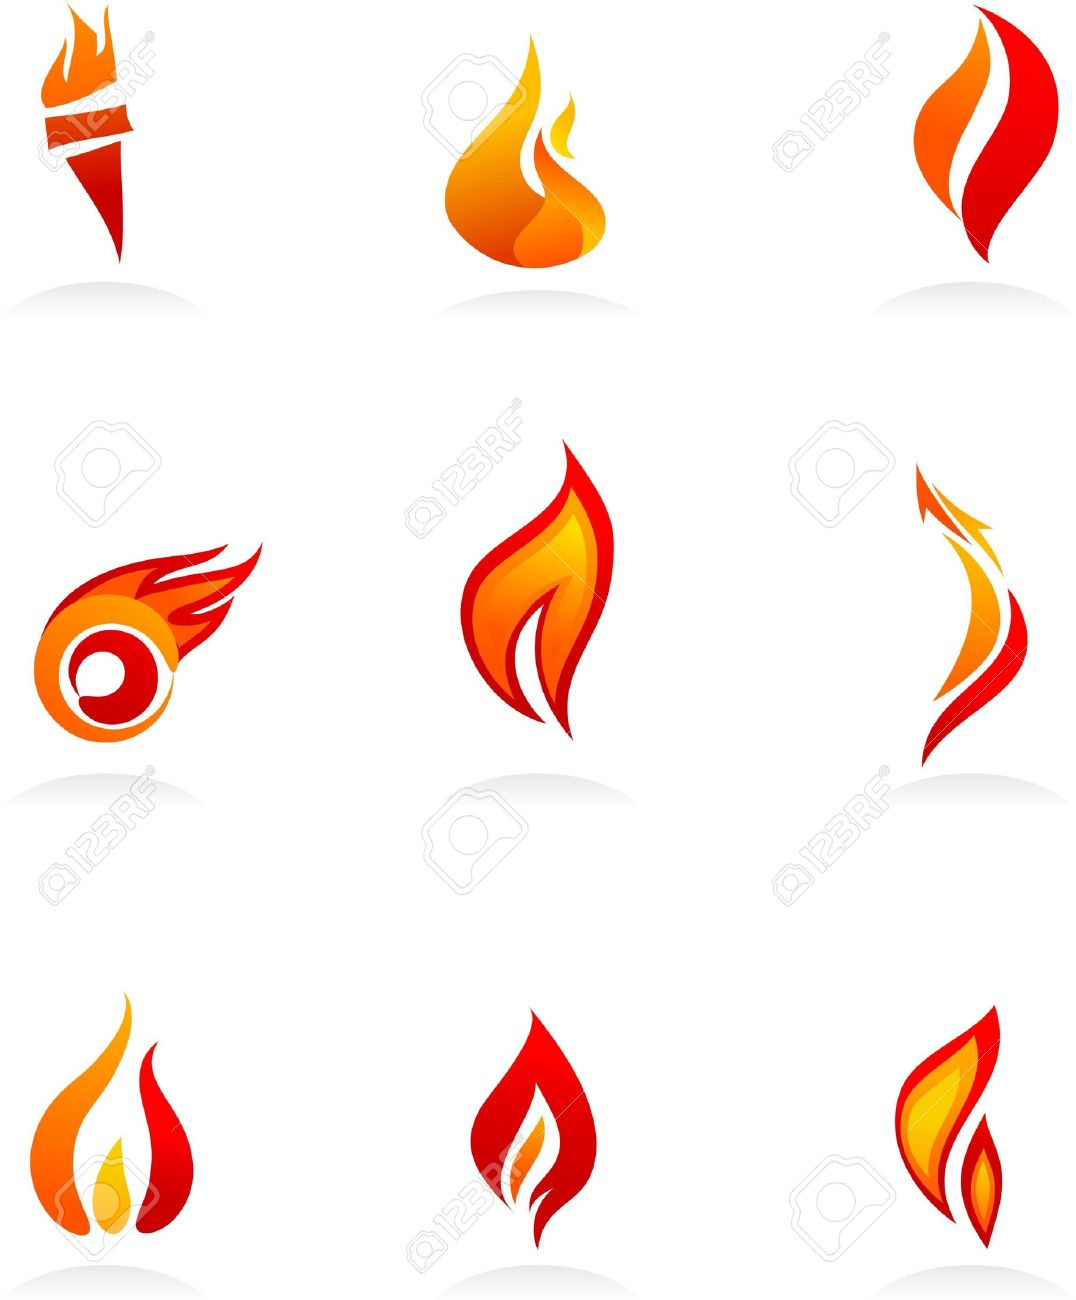 Collection Of Fire Icons And Logos Royalty Free Cliparts, Vectors ...